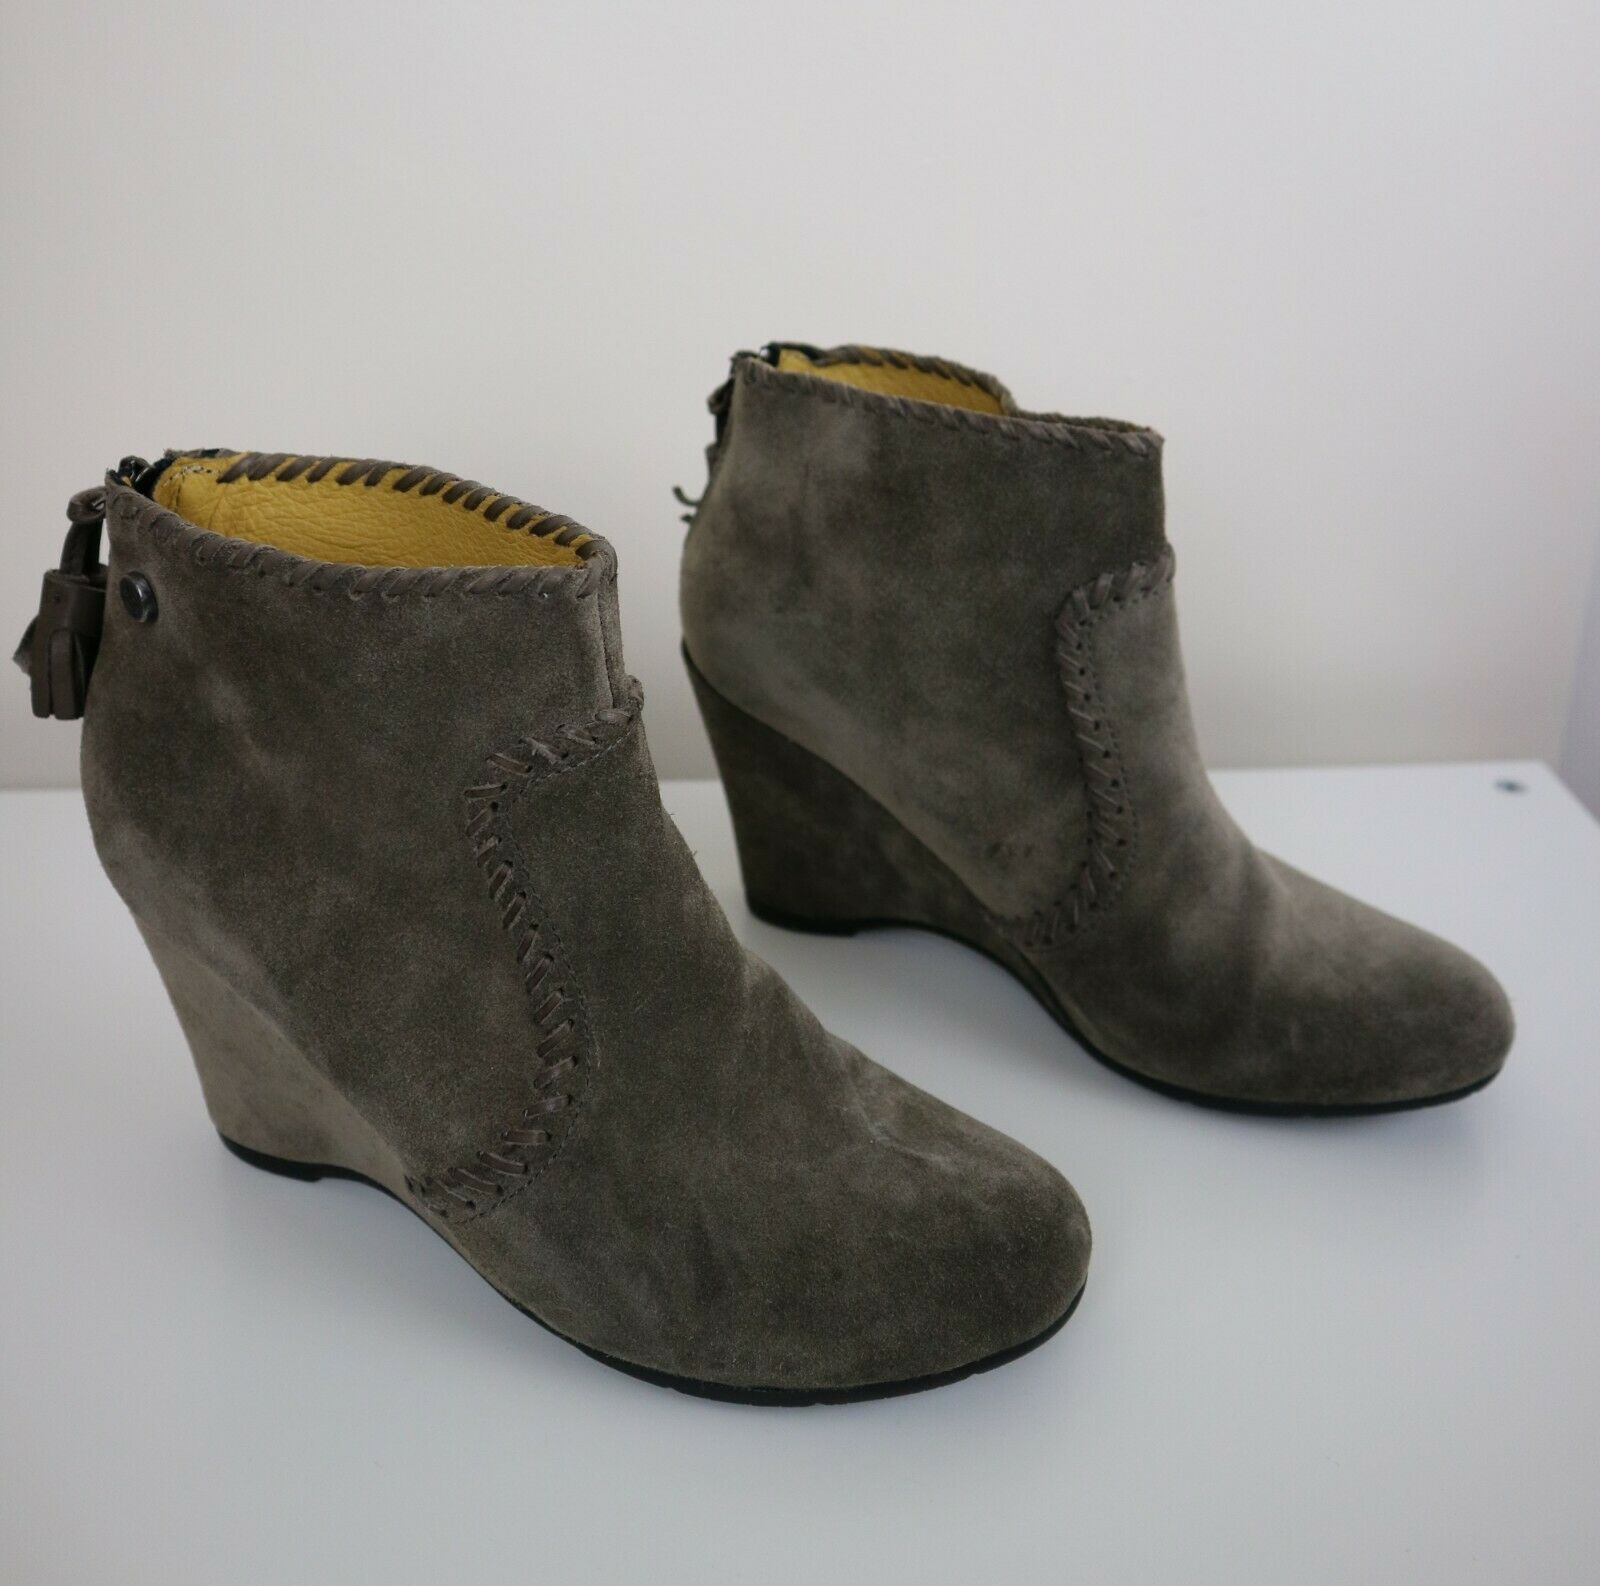 Bussola Suede Wedge Heel Ankle Boots with Tassel Light Brown   Beige